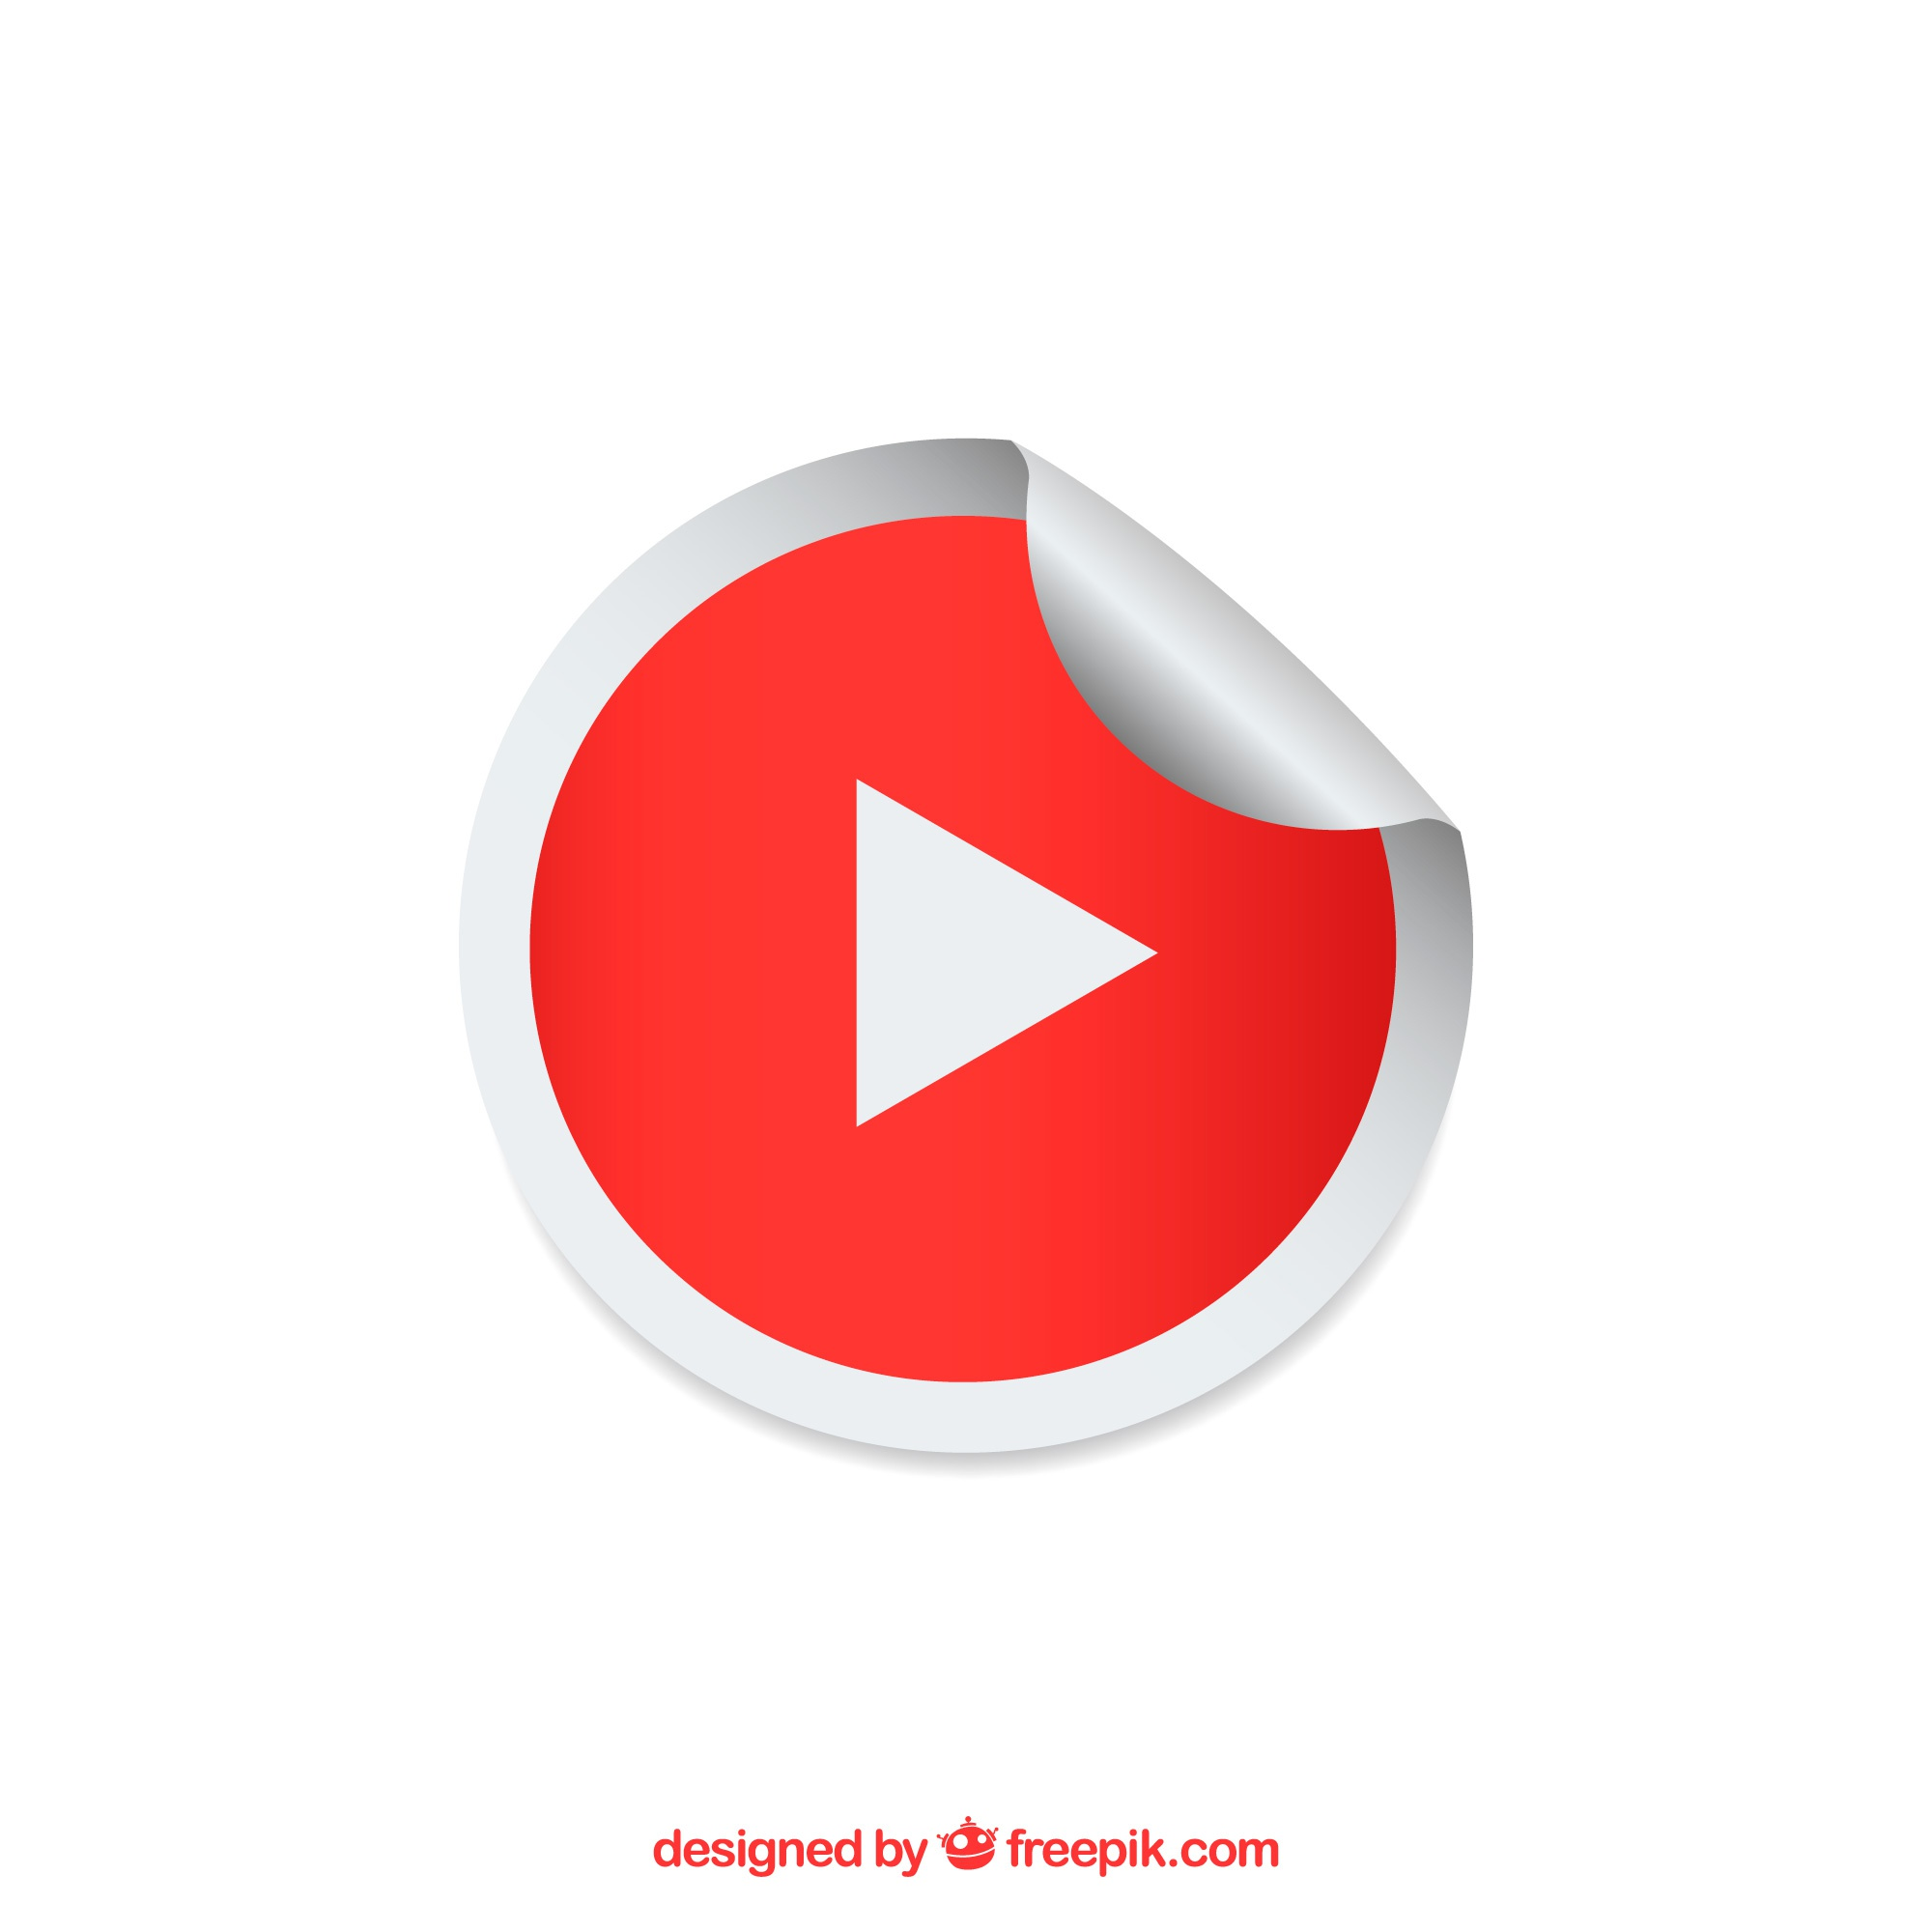 Youtube player icon with flat design